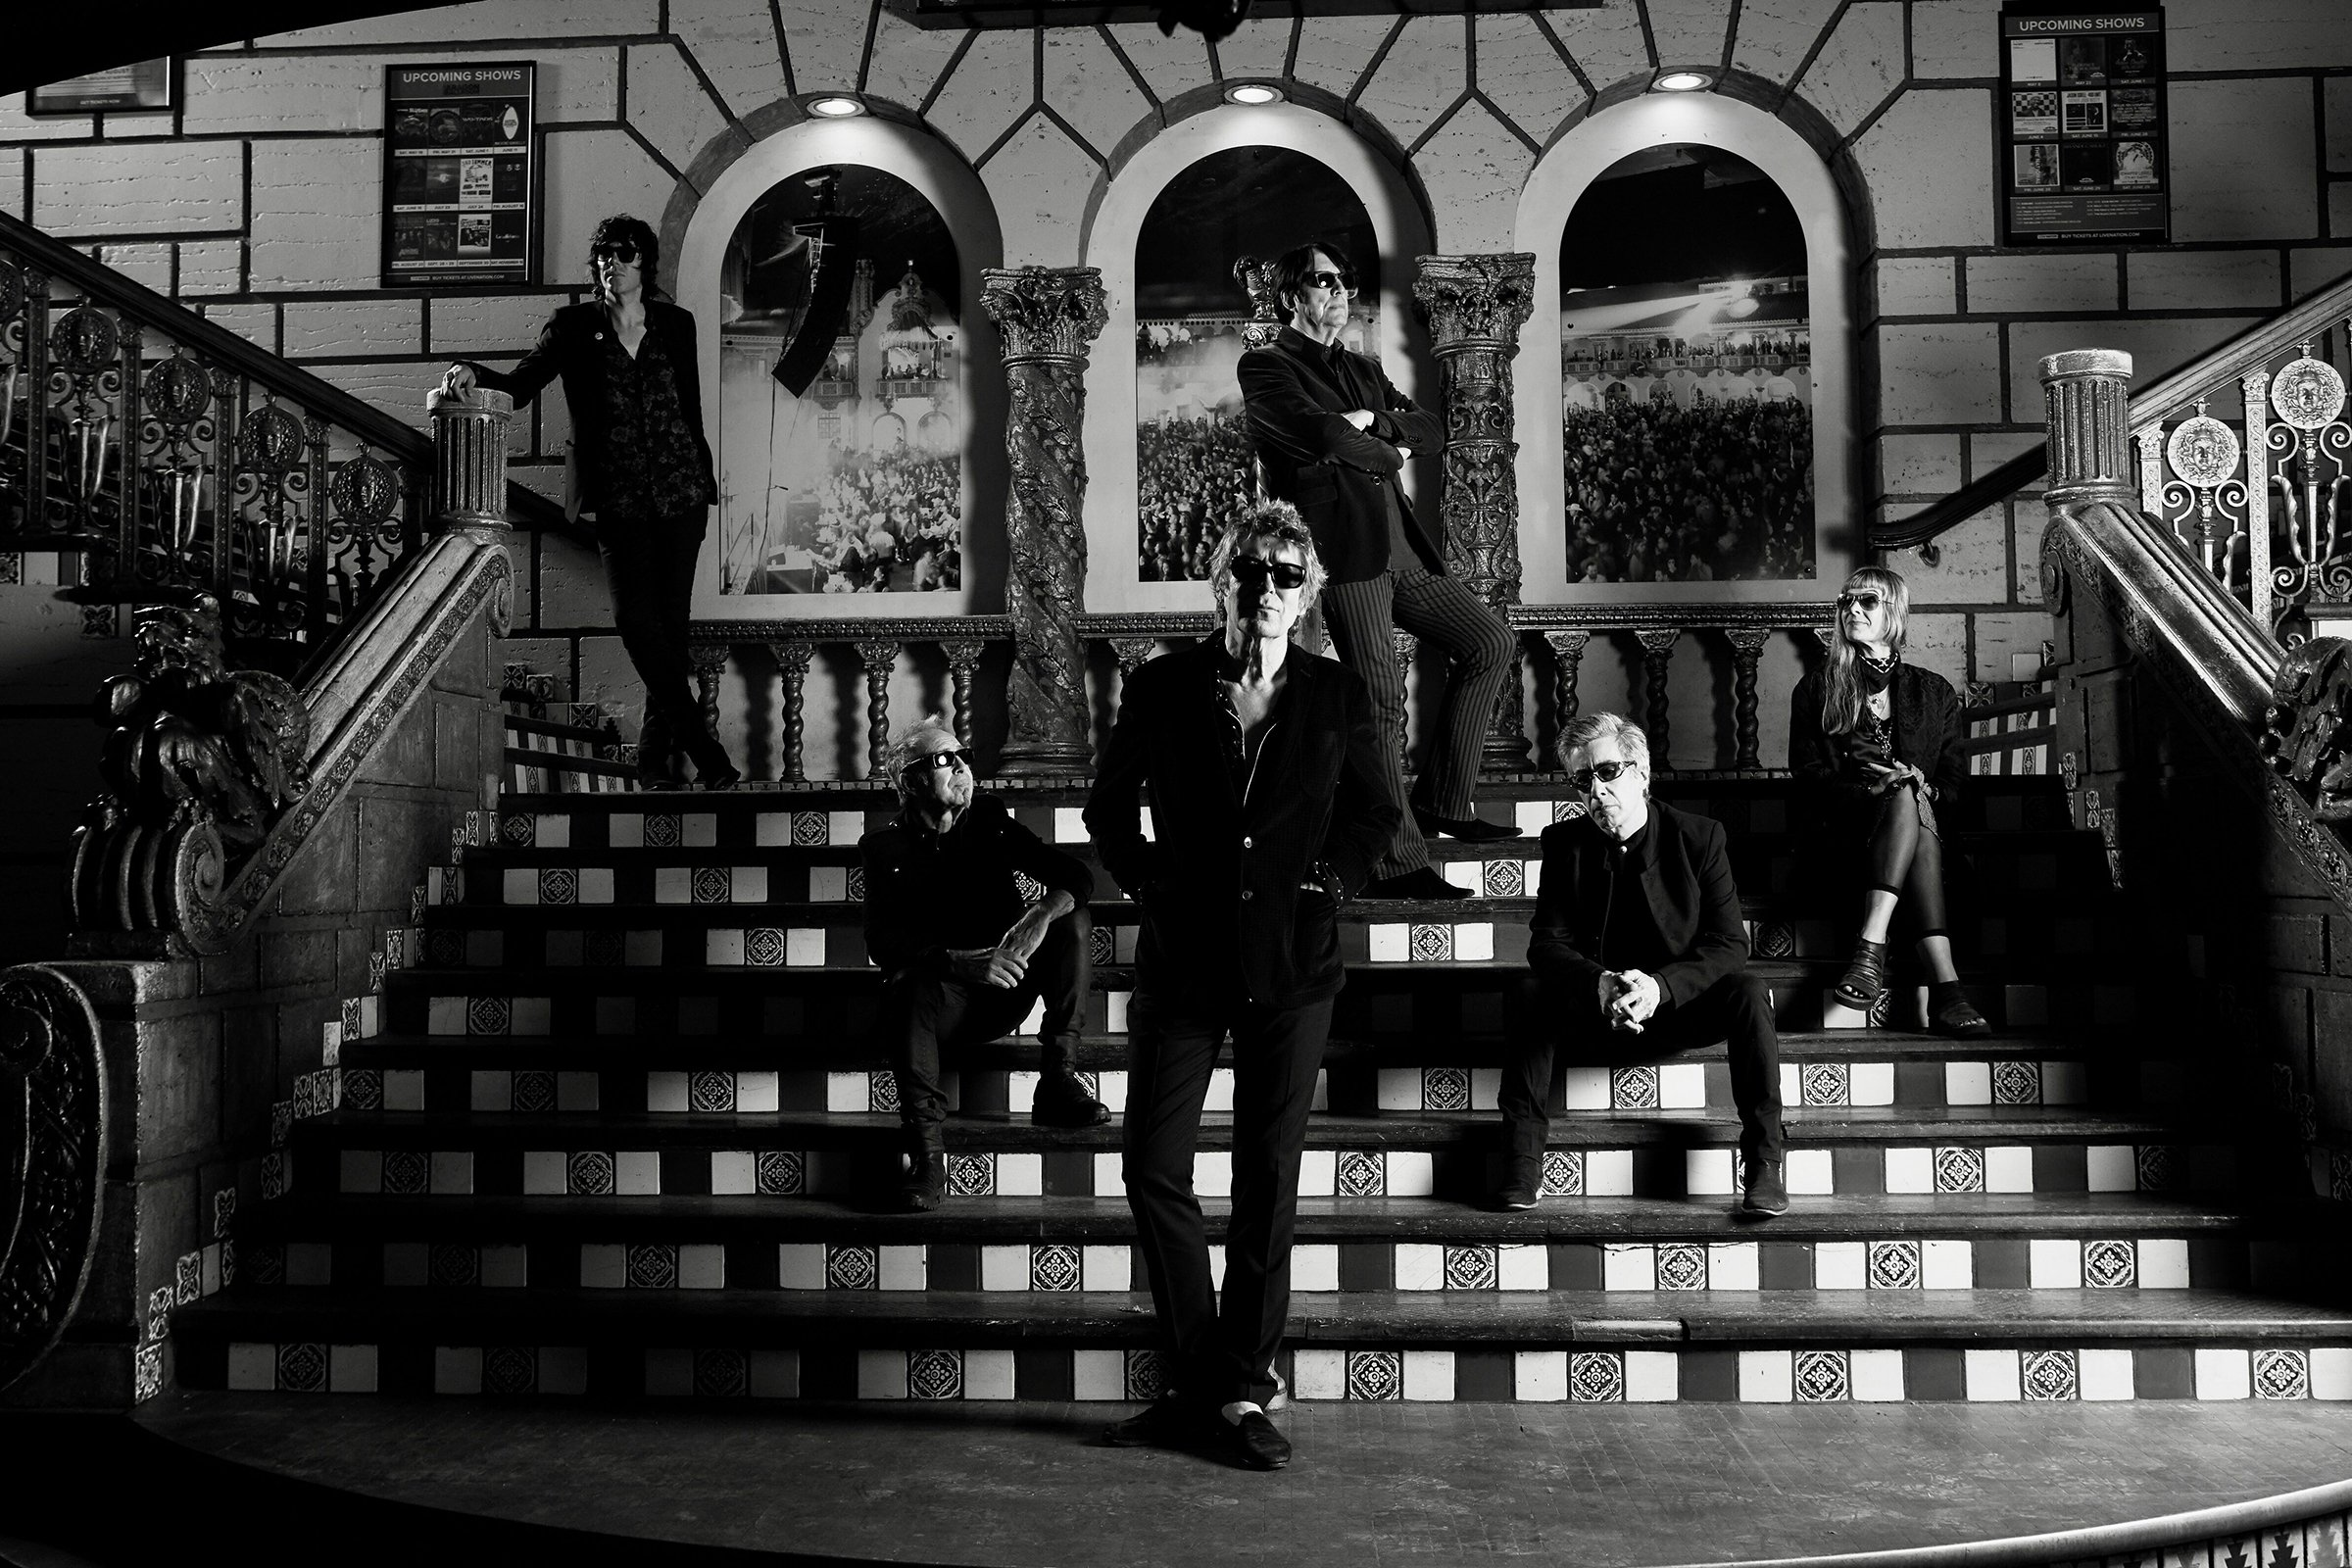 THE PSYCHEDELIC FURS - Announce New album 'Made Of Rain' out 1st May - Hear new single 'Don't Believe' 1